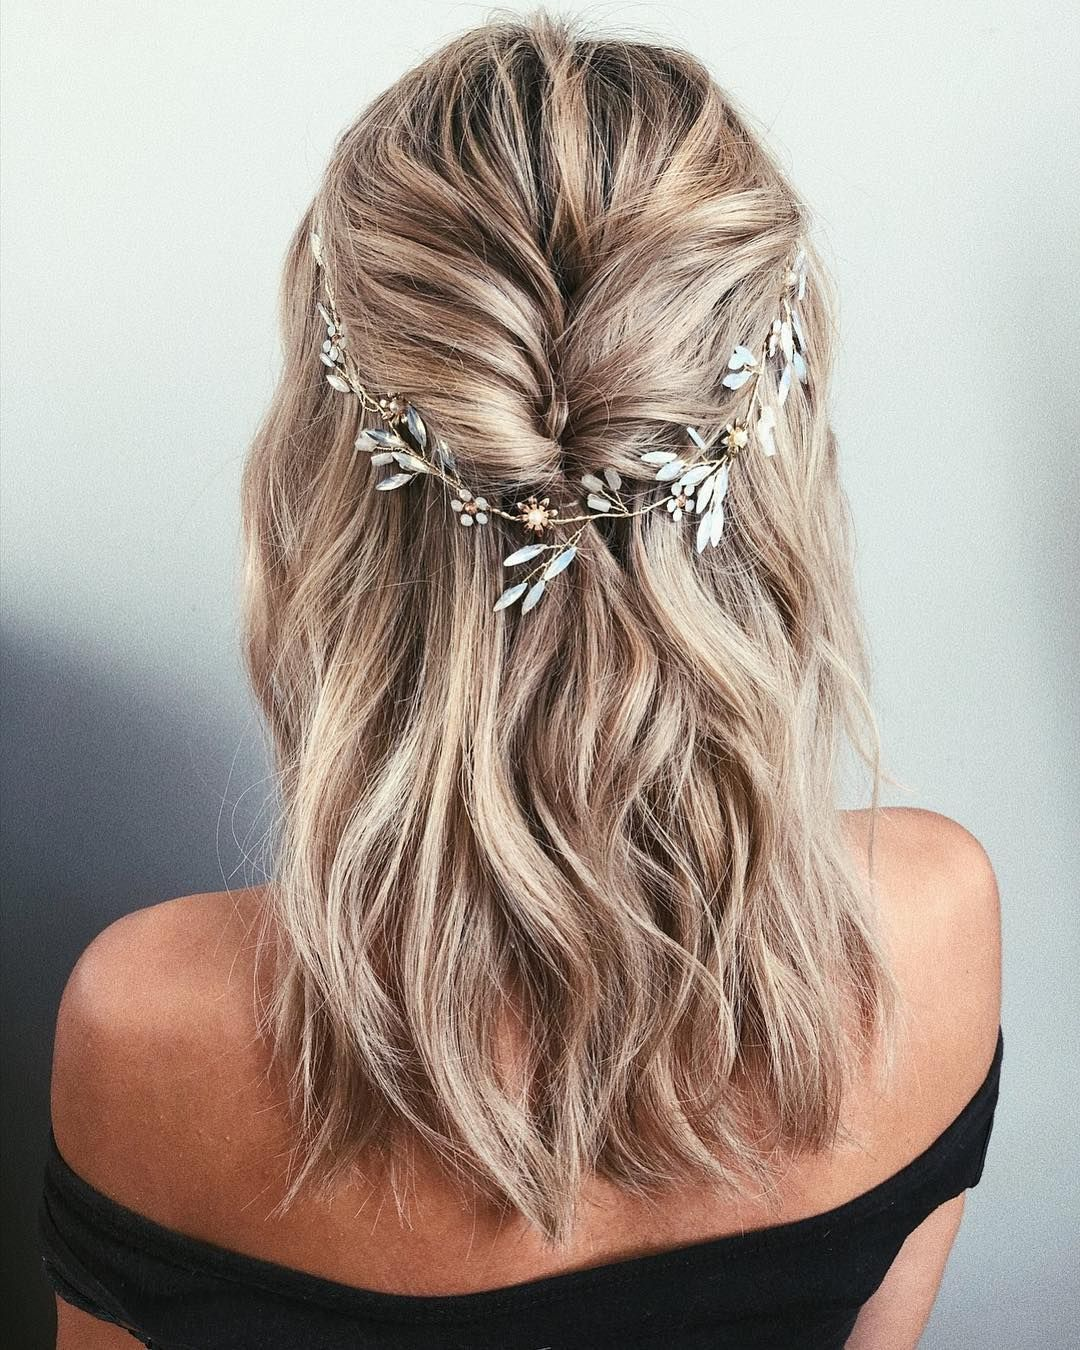 52 Special Occasion Hairstyles For Long Hair In 2019